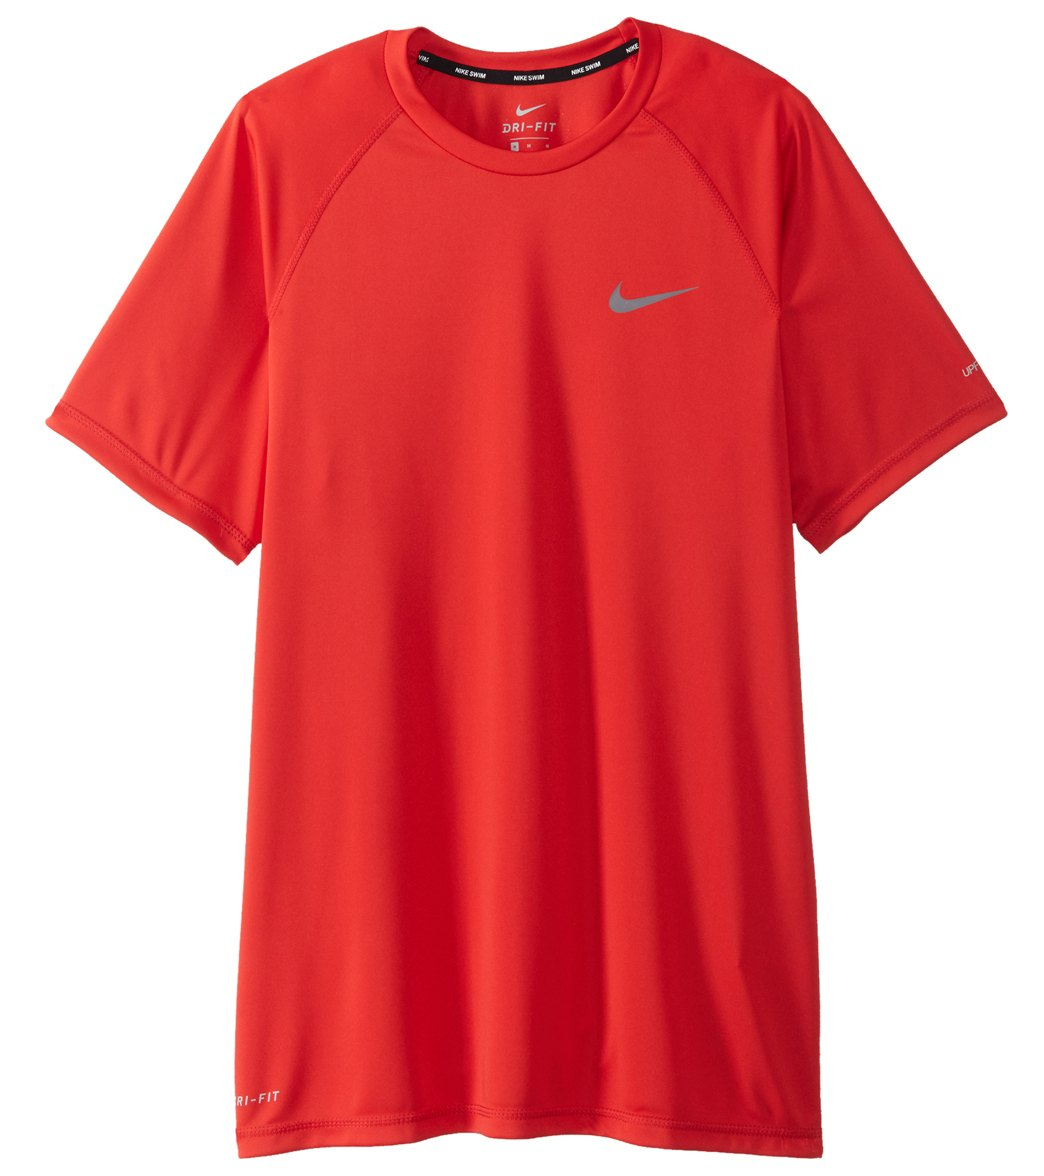 e28a828d Nike Men's Dri-FIT S/S Hydroguard at SwimOutlet.com